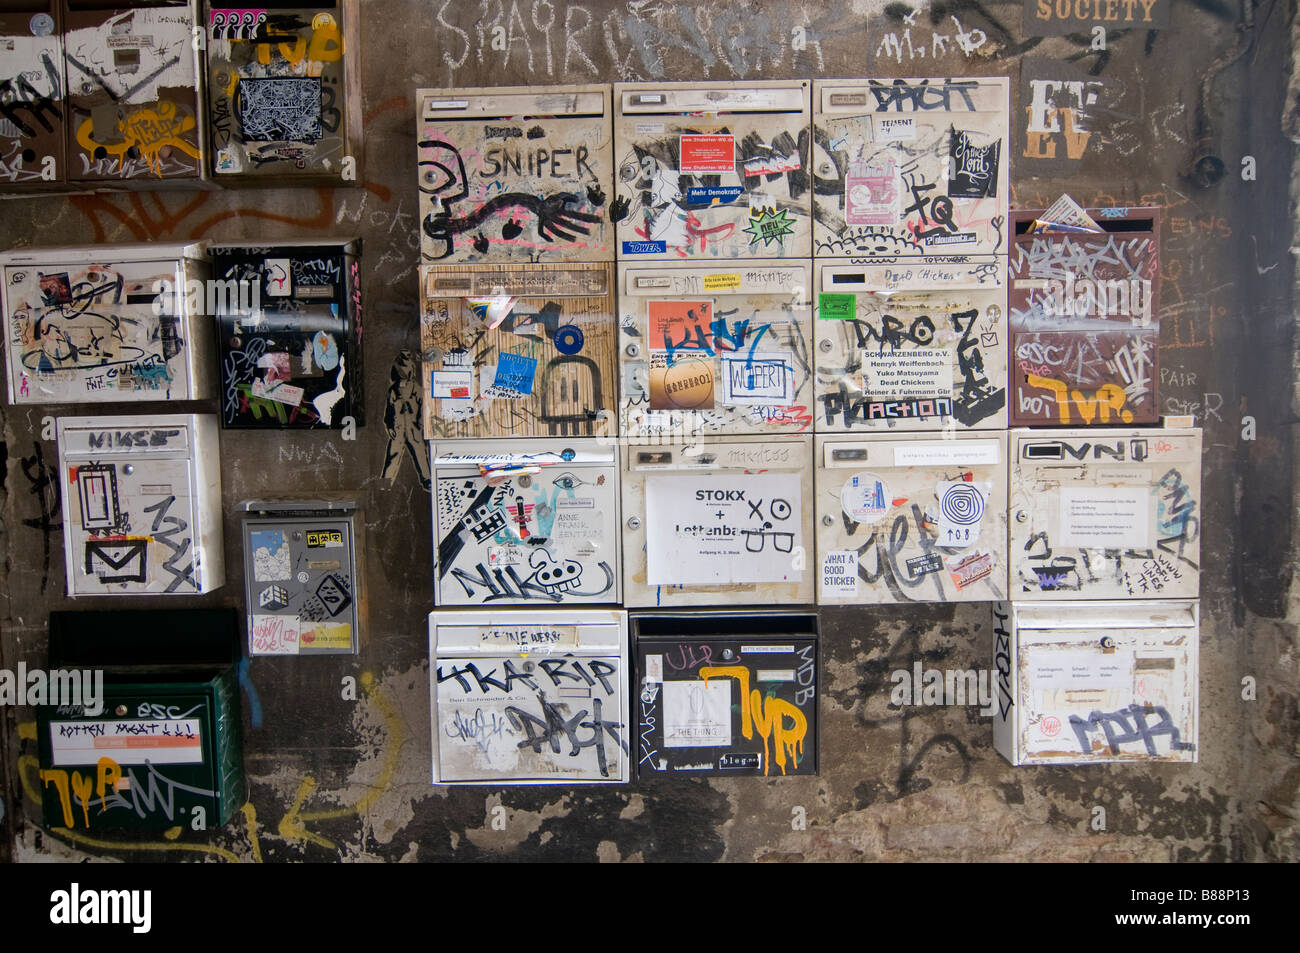 Postboxes full of Graffiti in the famous Hackescher Markt Berlin GermanyBerlin - Stock Image